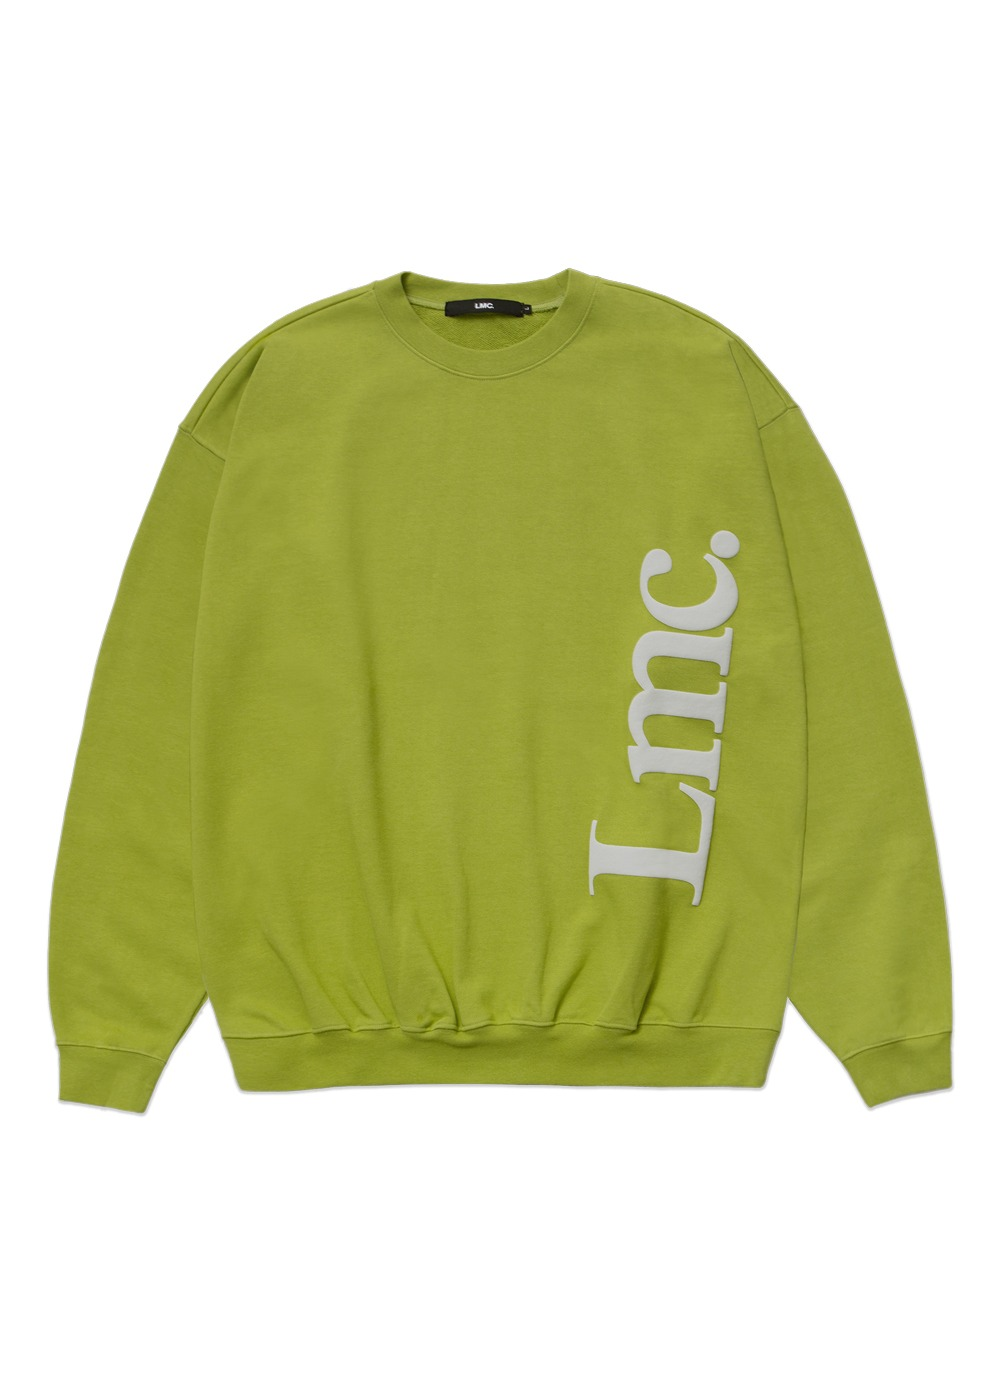 LMC VERTICAL SERIF OVERSIZED SWEATSHIRT avocado